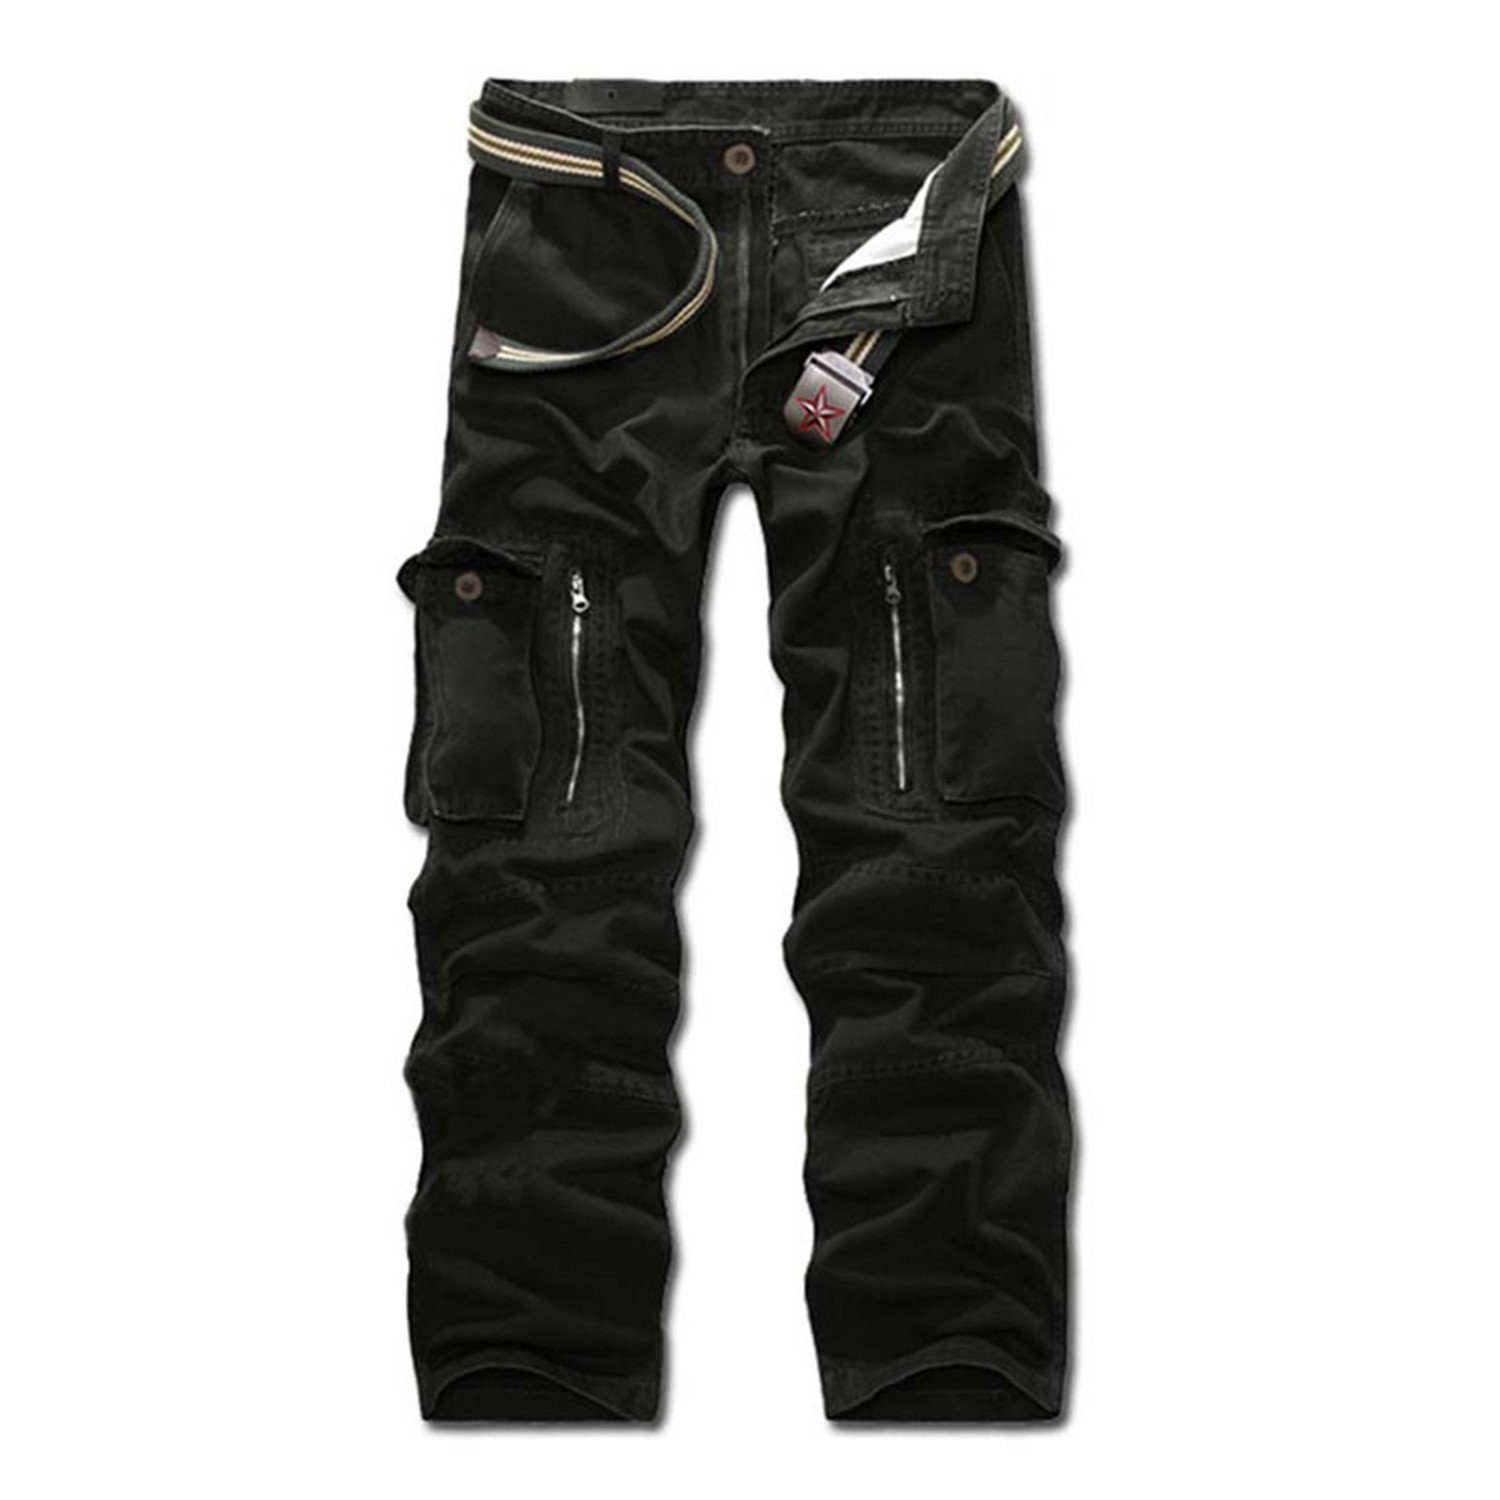 Toping Fine Pants Fashion Mens Slacks Trousers Military Army Combat Camo Work Pants Overalls 249 Army Green31 by Toping Fine Pants (Image #1)